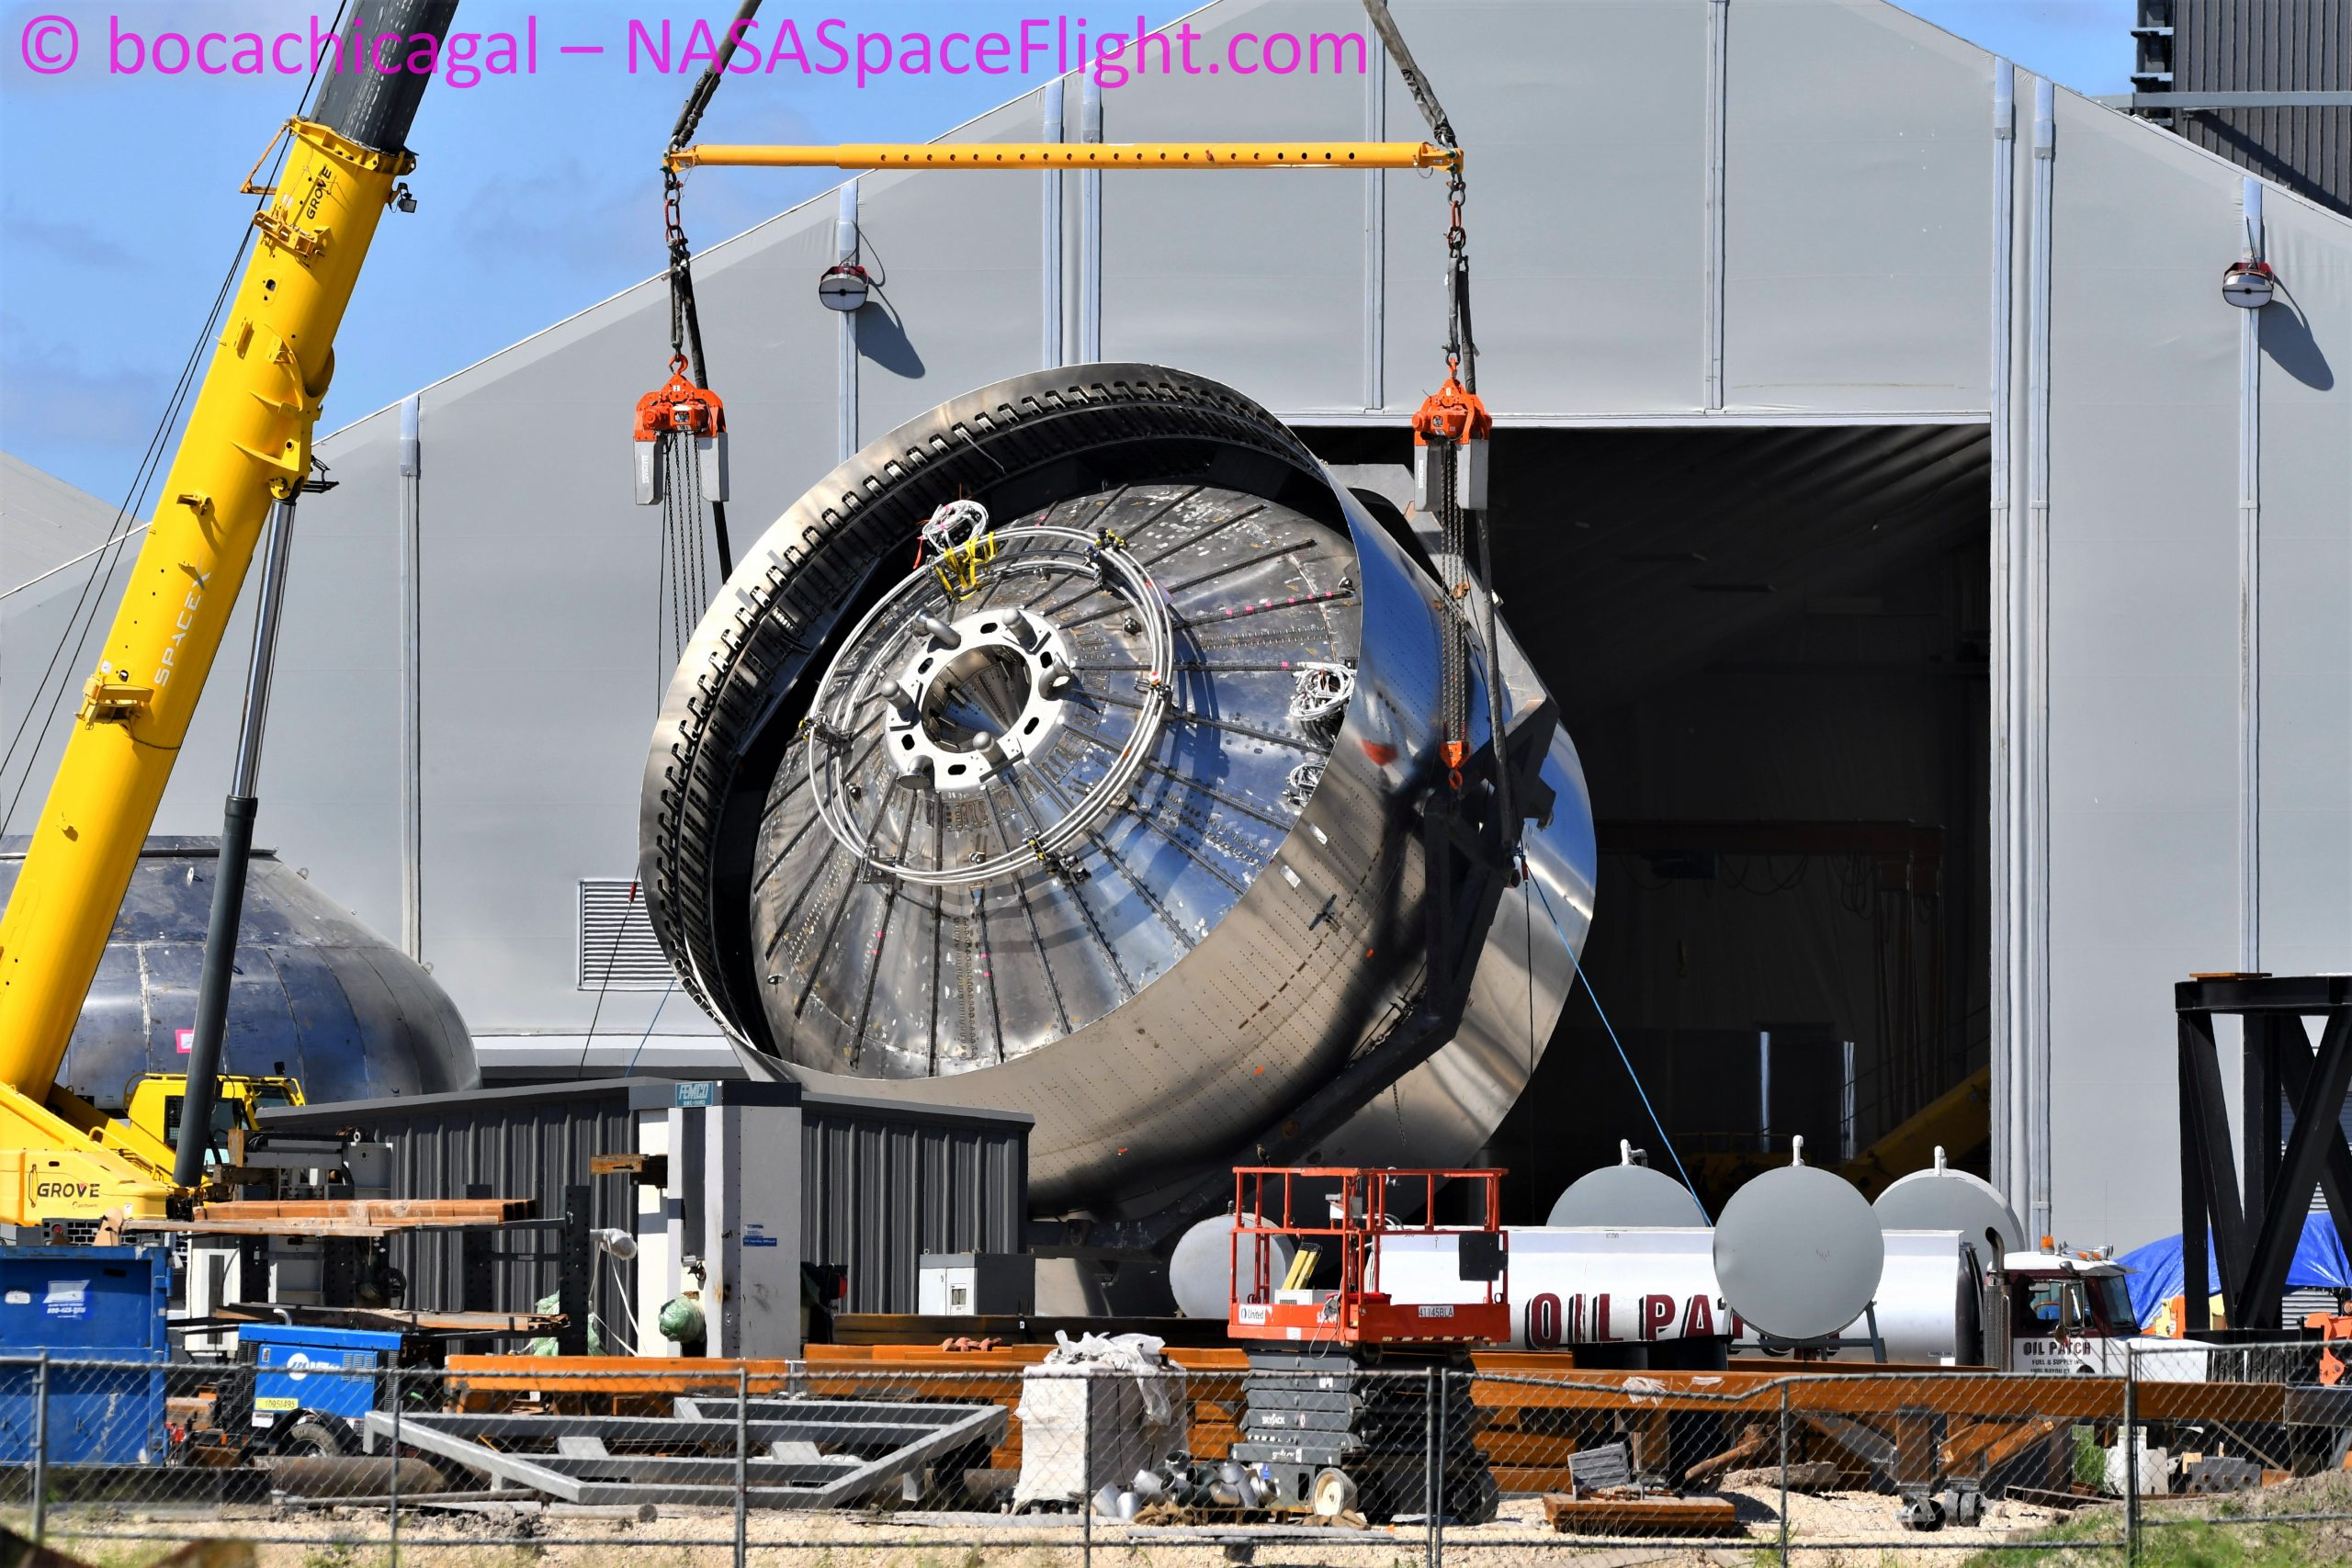 Starship Boca Chica 081520 (NASASpaceflight – bocachicagal) SN8 engine section flip 2